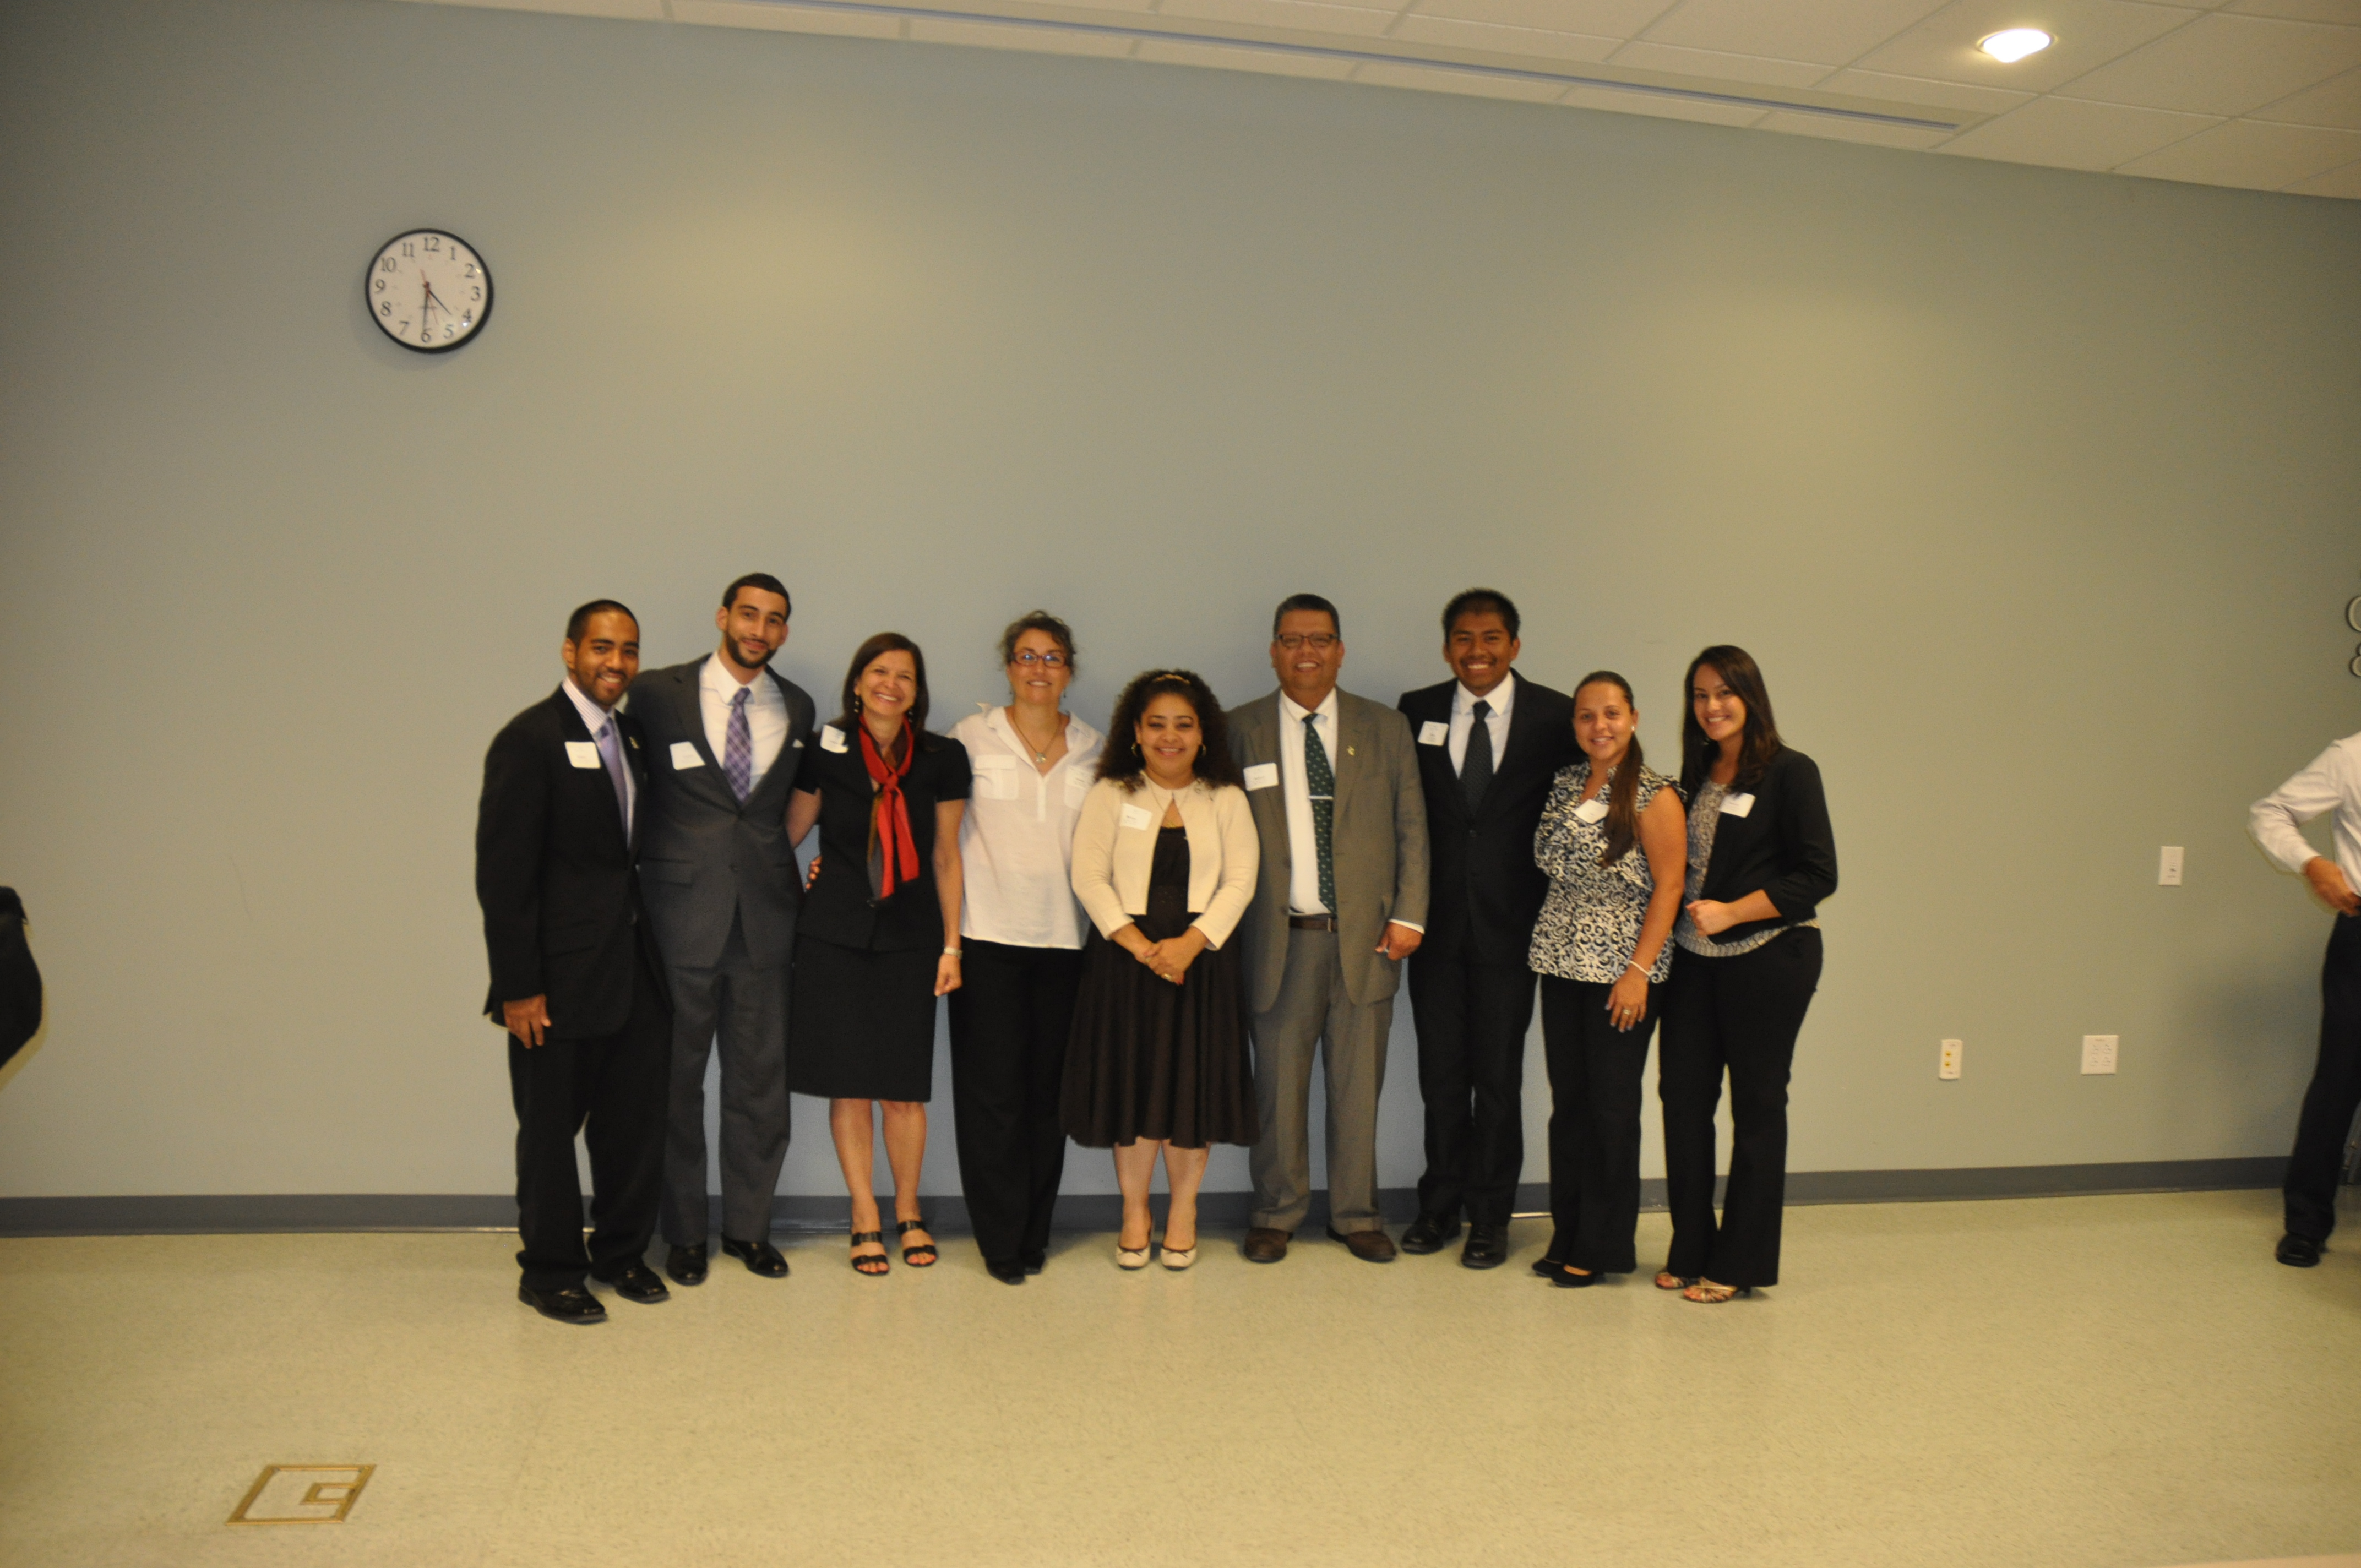 2nd Annual UNC Hispanic / Latino Faculty Forum group